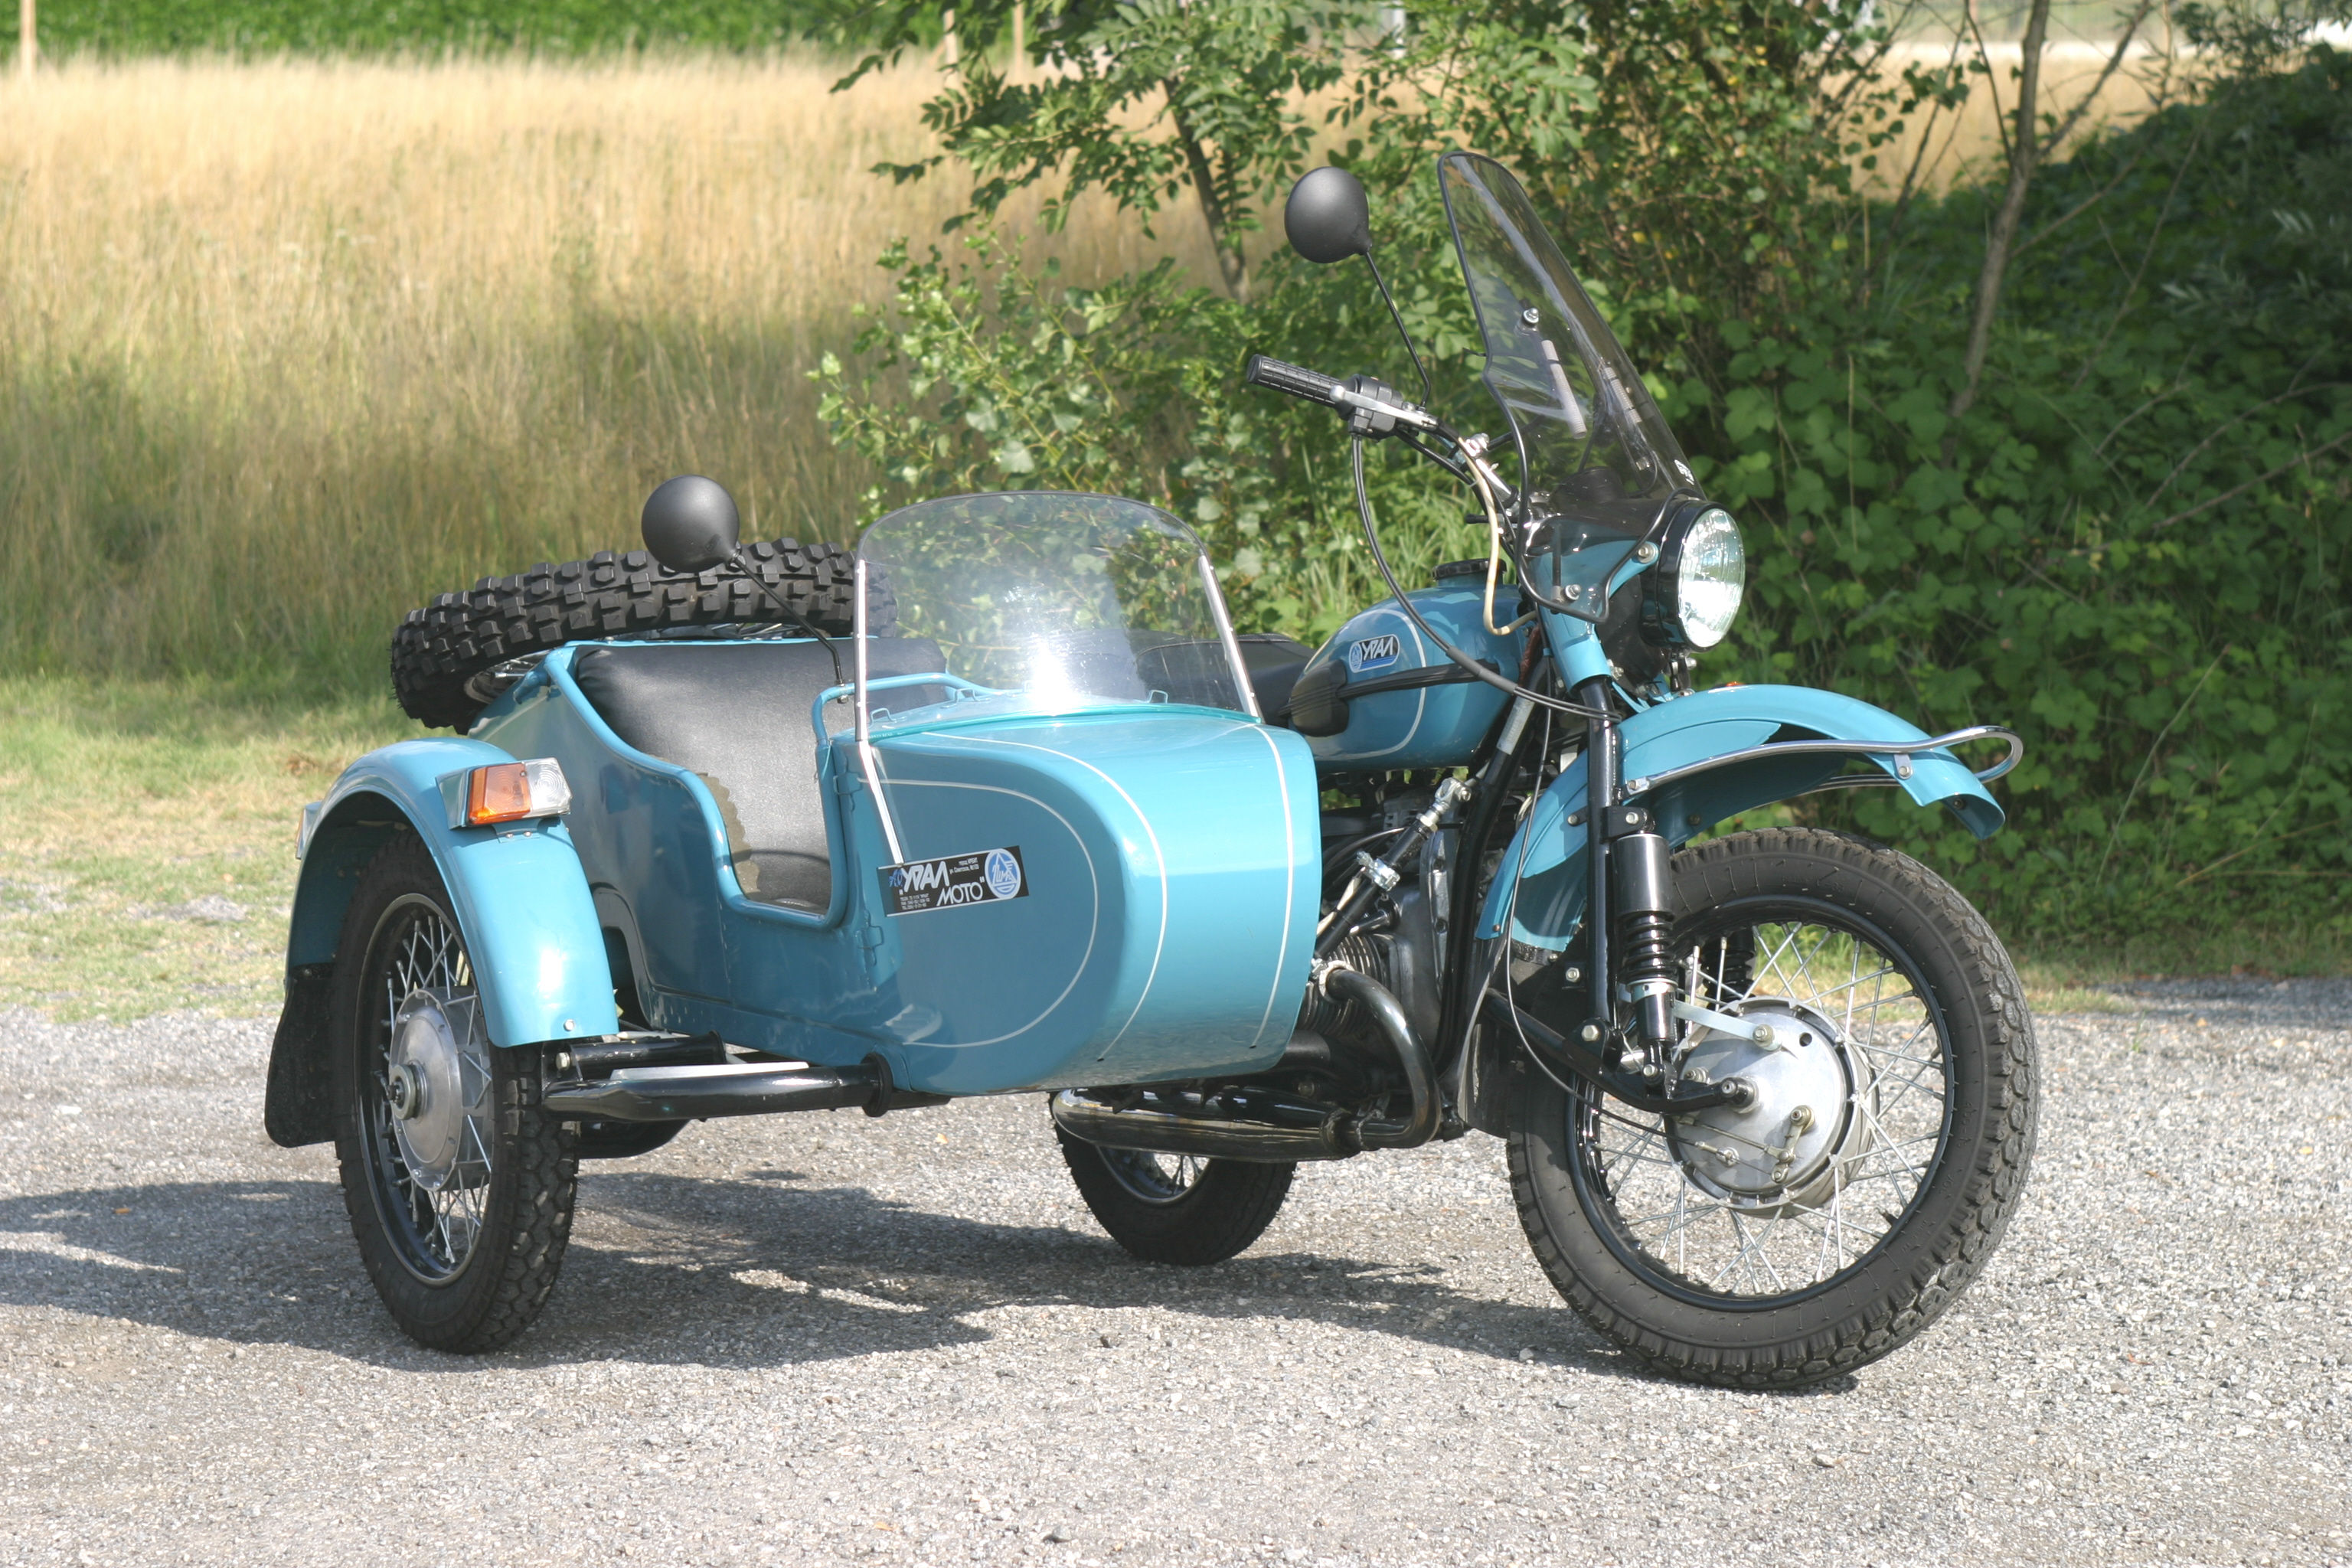 Ural M 66 with sidecar 1975 images #127252